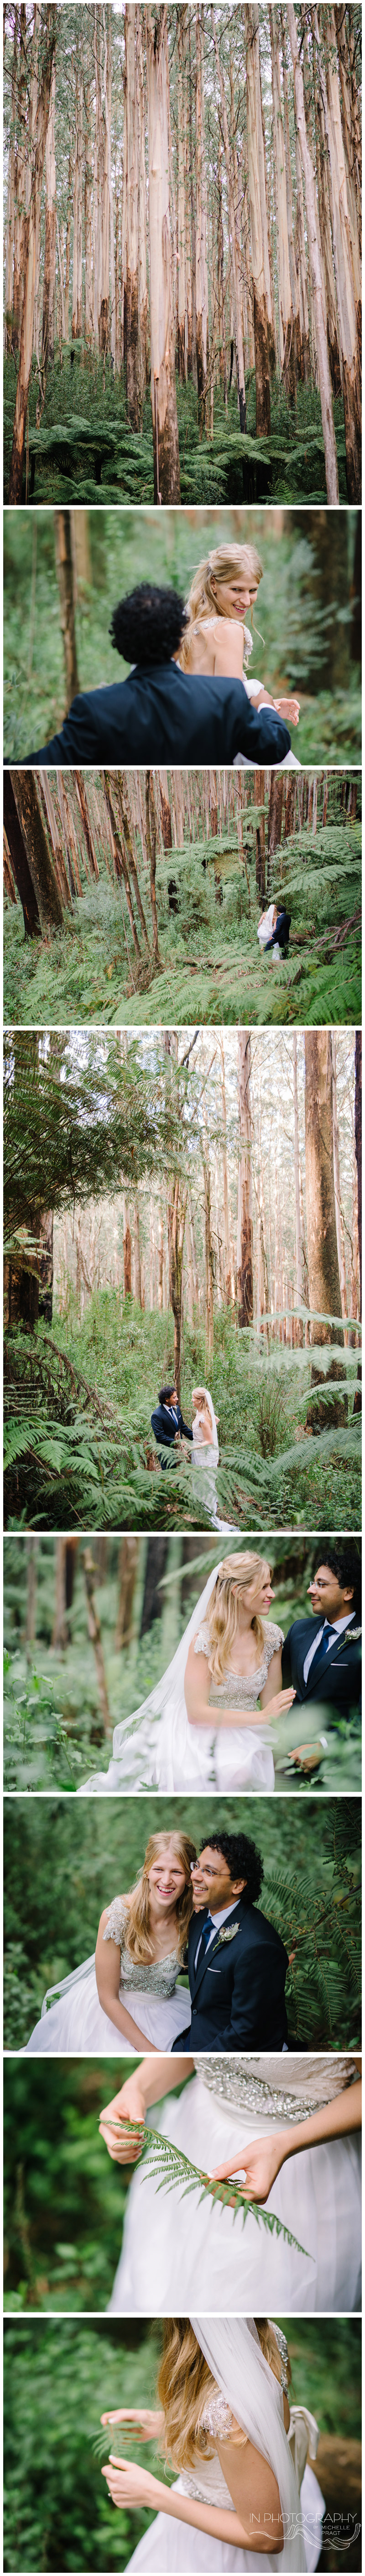 Yarra Valley forest wedding photography